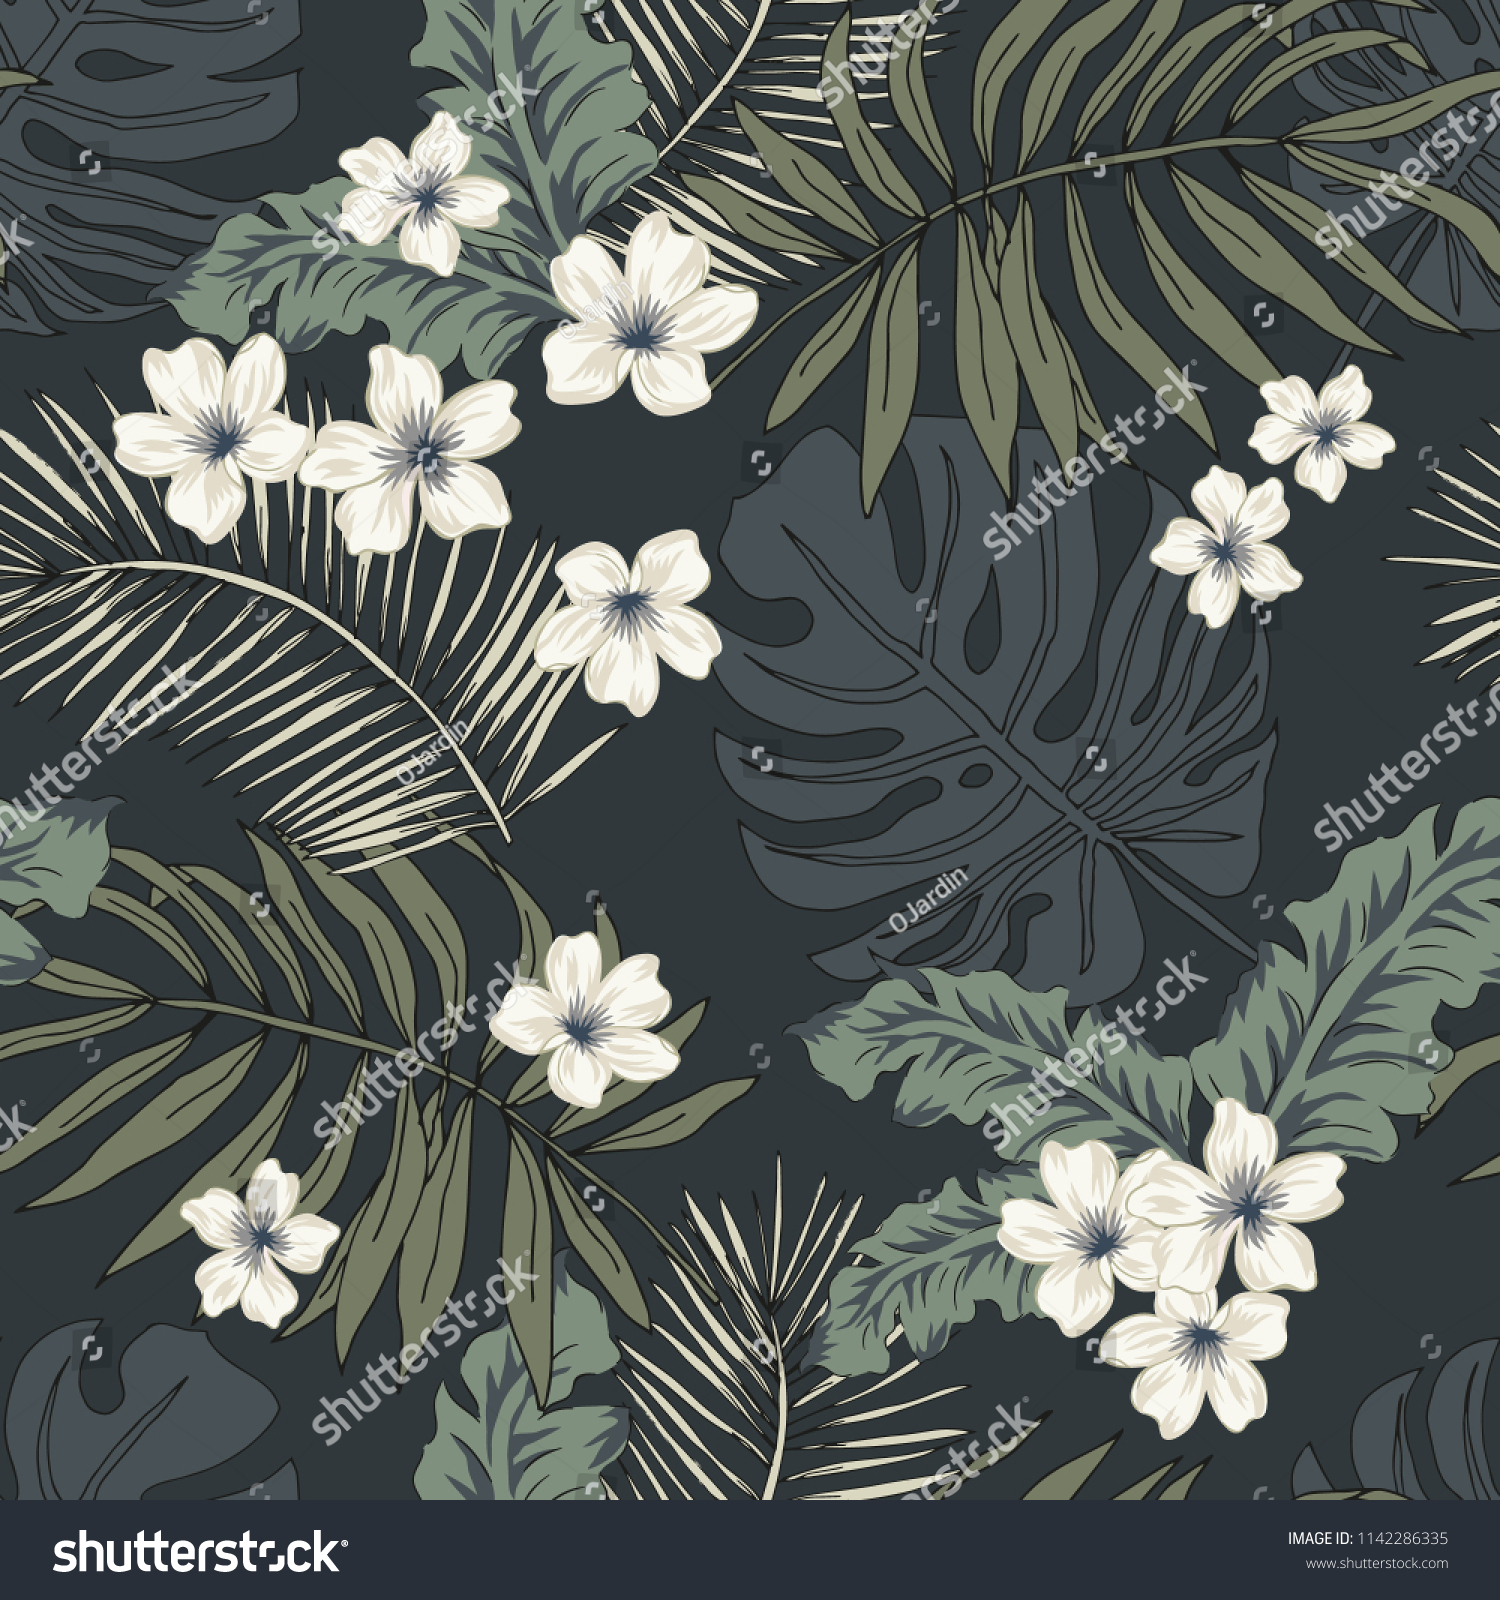 Tropical plumeria flowers and palm leaves on the black background. Vector seamless pattern. Jungle night illustration. Exotic plants. Summer beach floral design for men. Paradise nature. Dark color